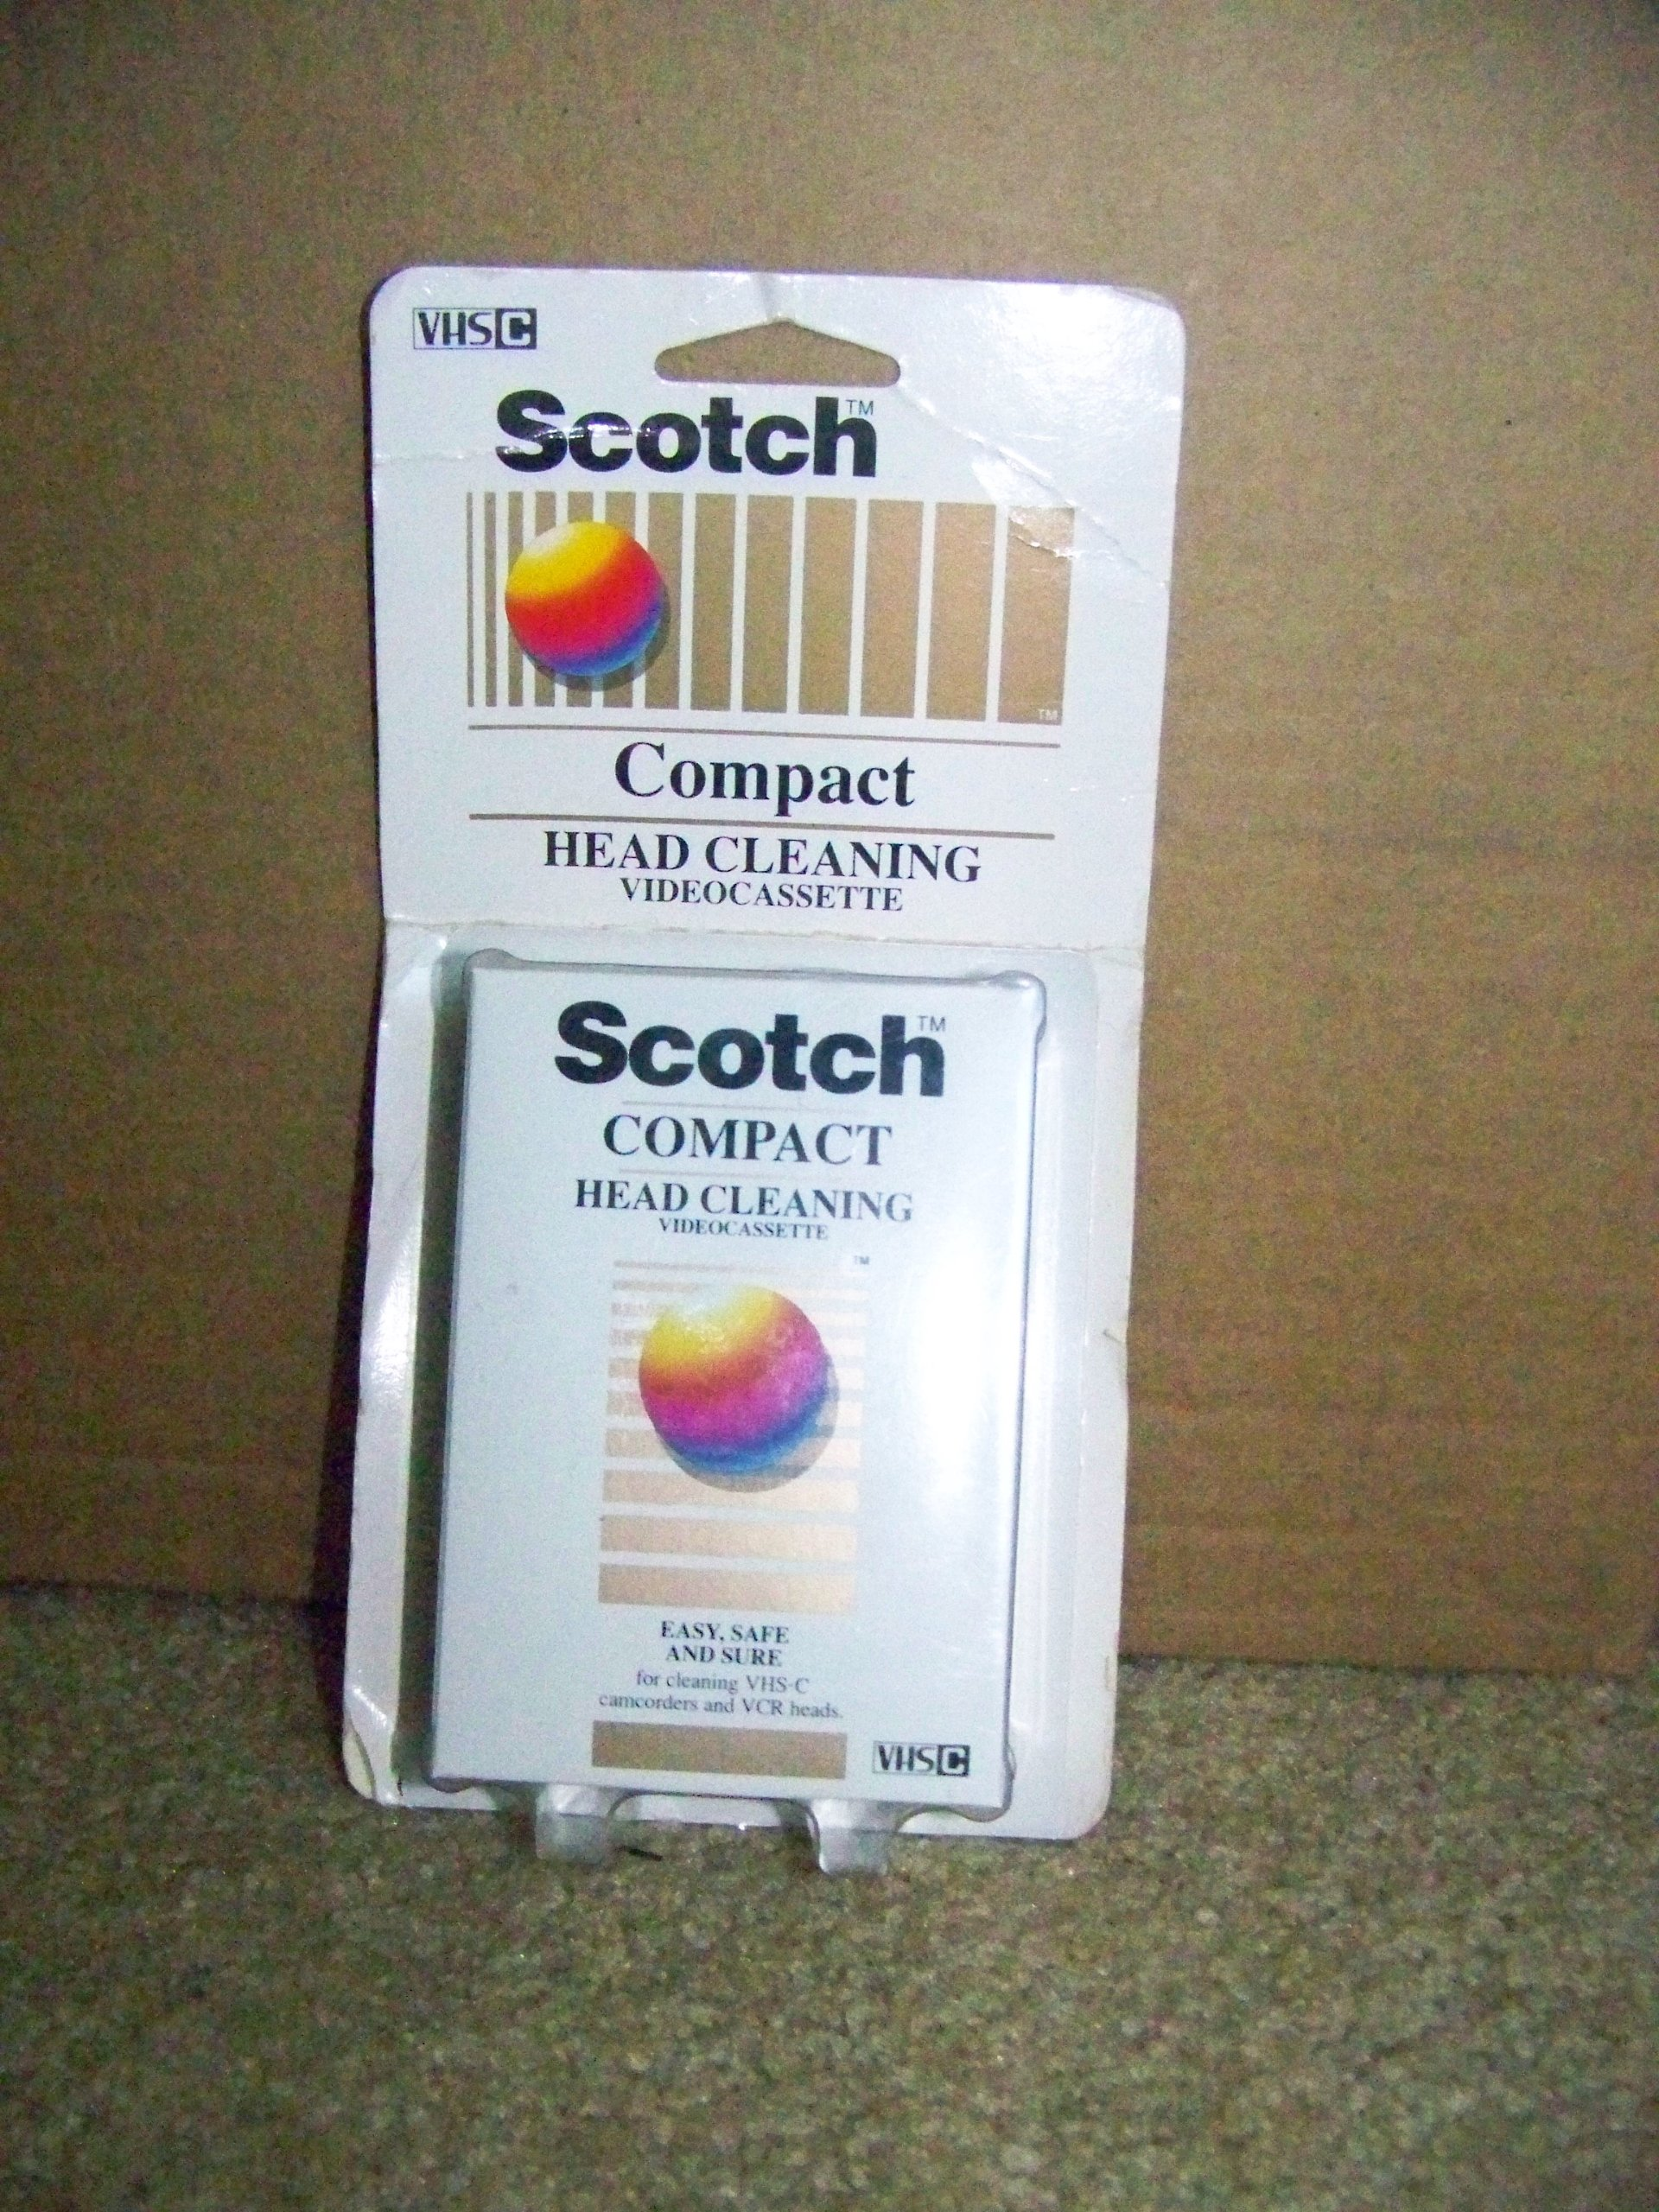 Scotch Compact Head Cleaning- Videocassette